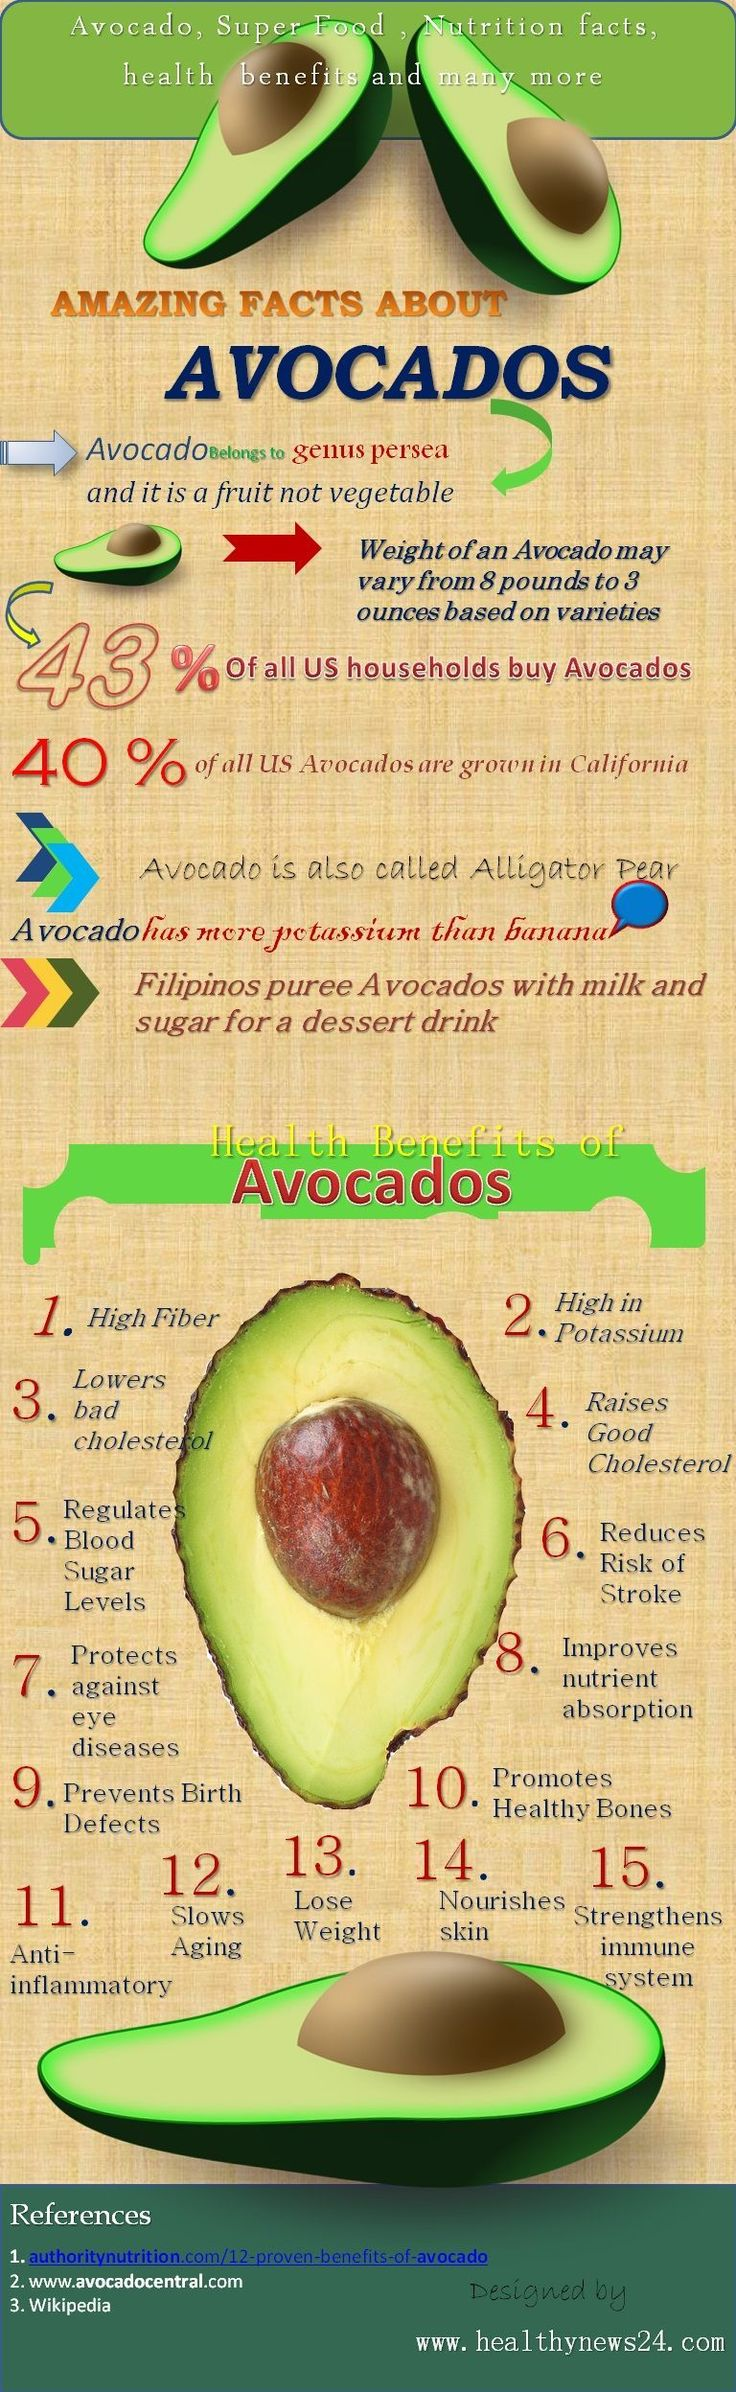 Avocados health benefits-Top 15 health benefits of Avocados. #vegetariandietsbenefits